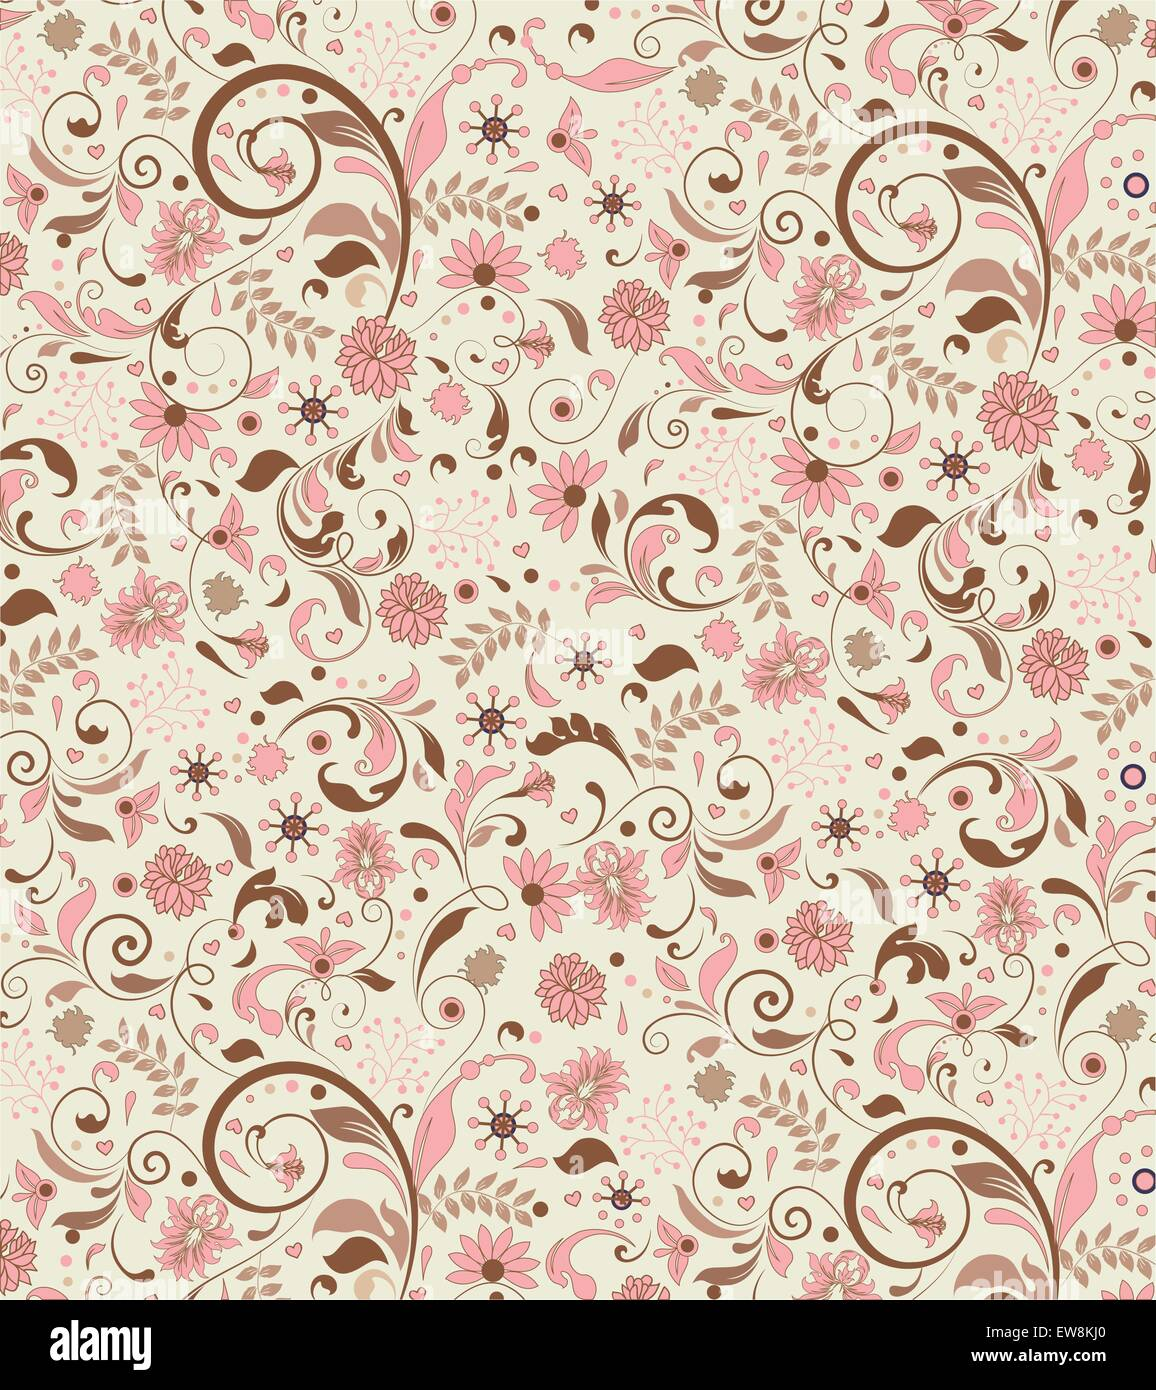 Vintage Background With Ornate Elegant Abstract Floral